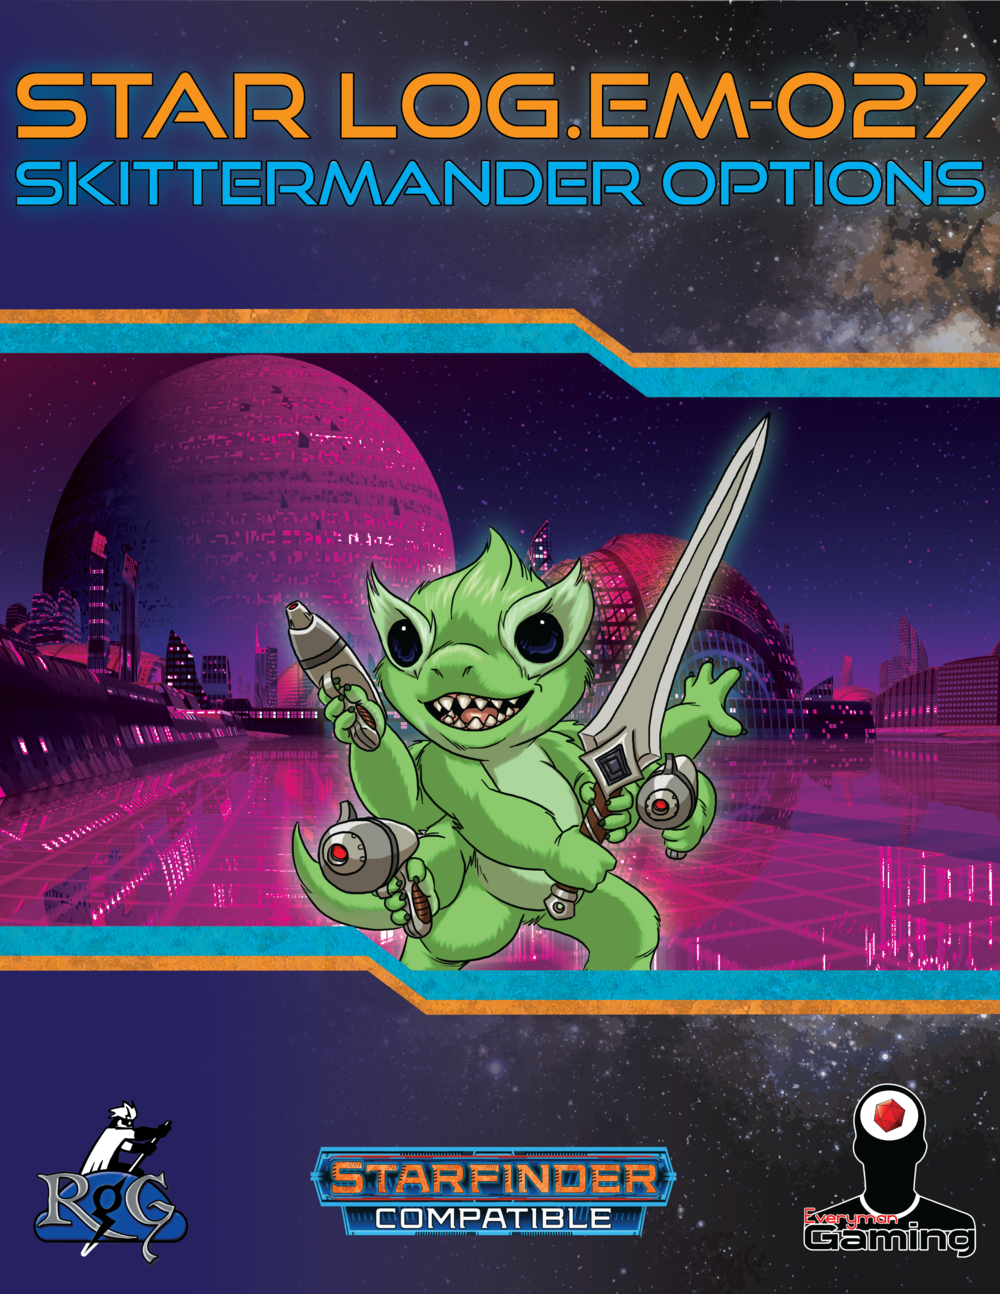 SF027 Skittermander Options.png